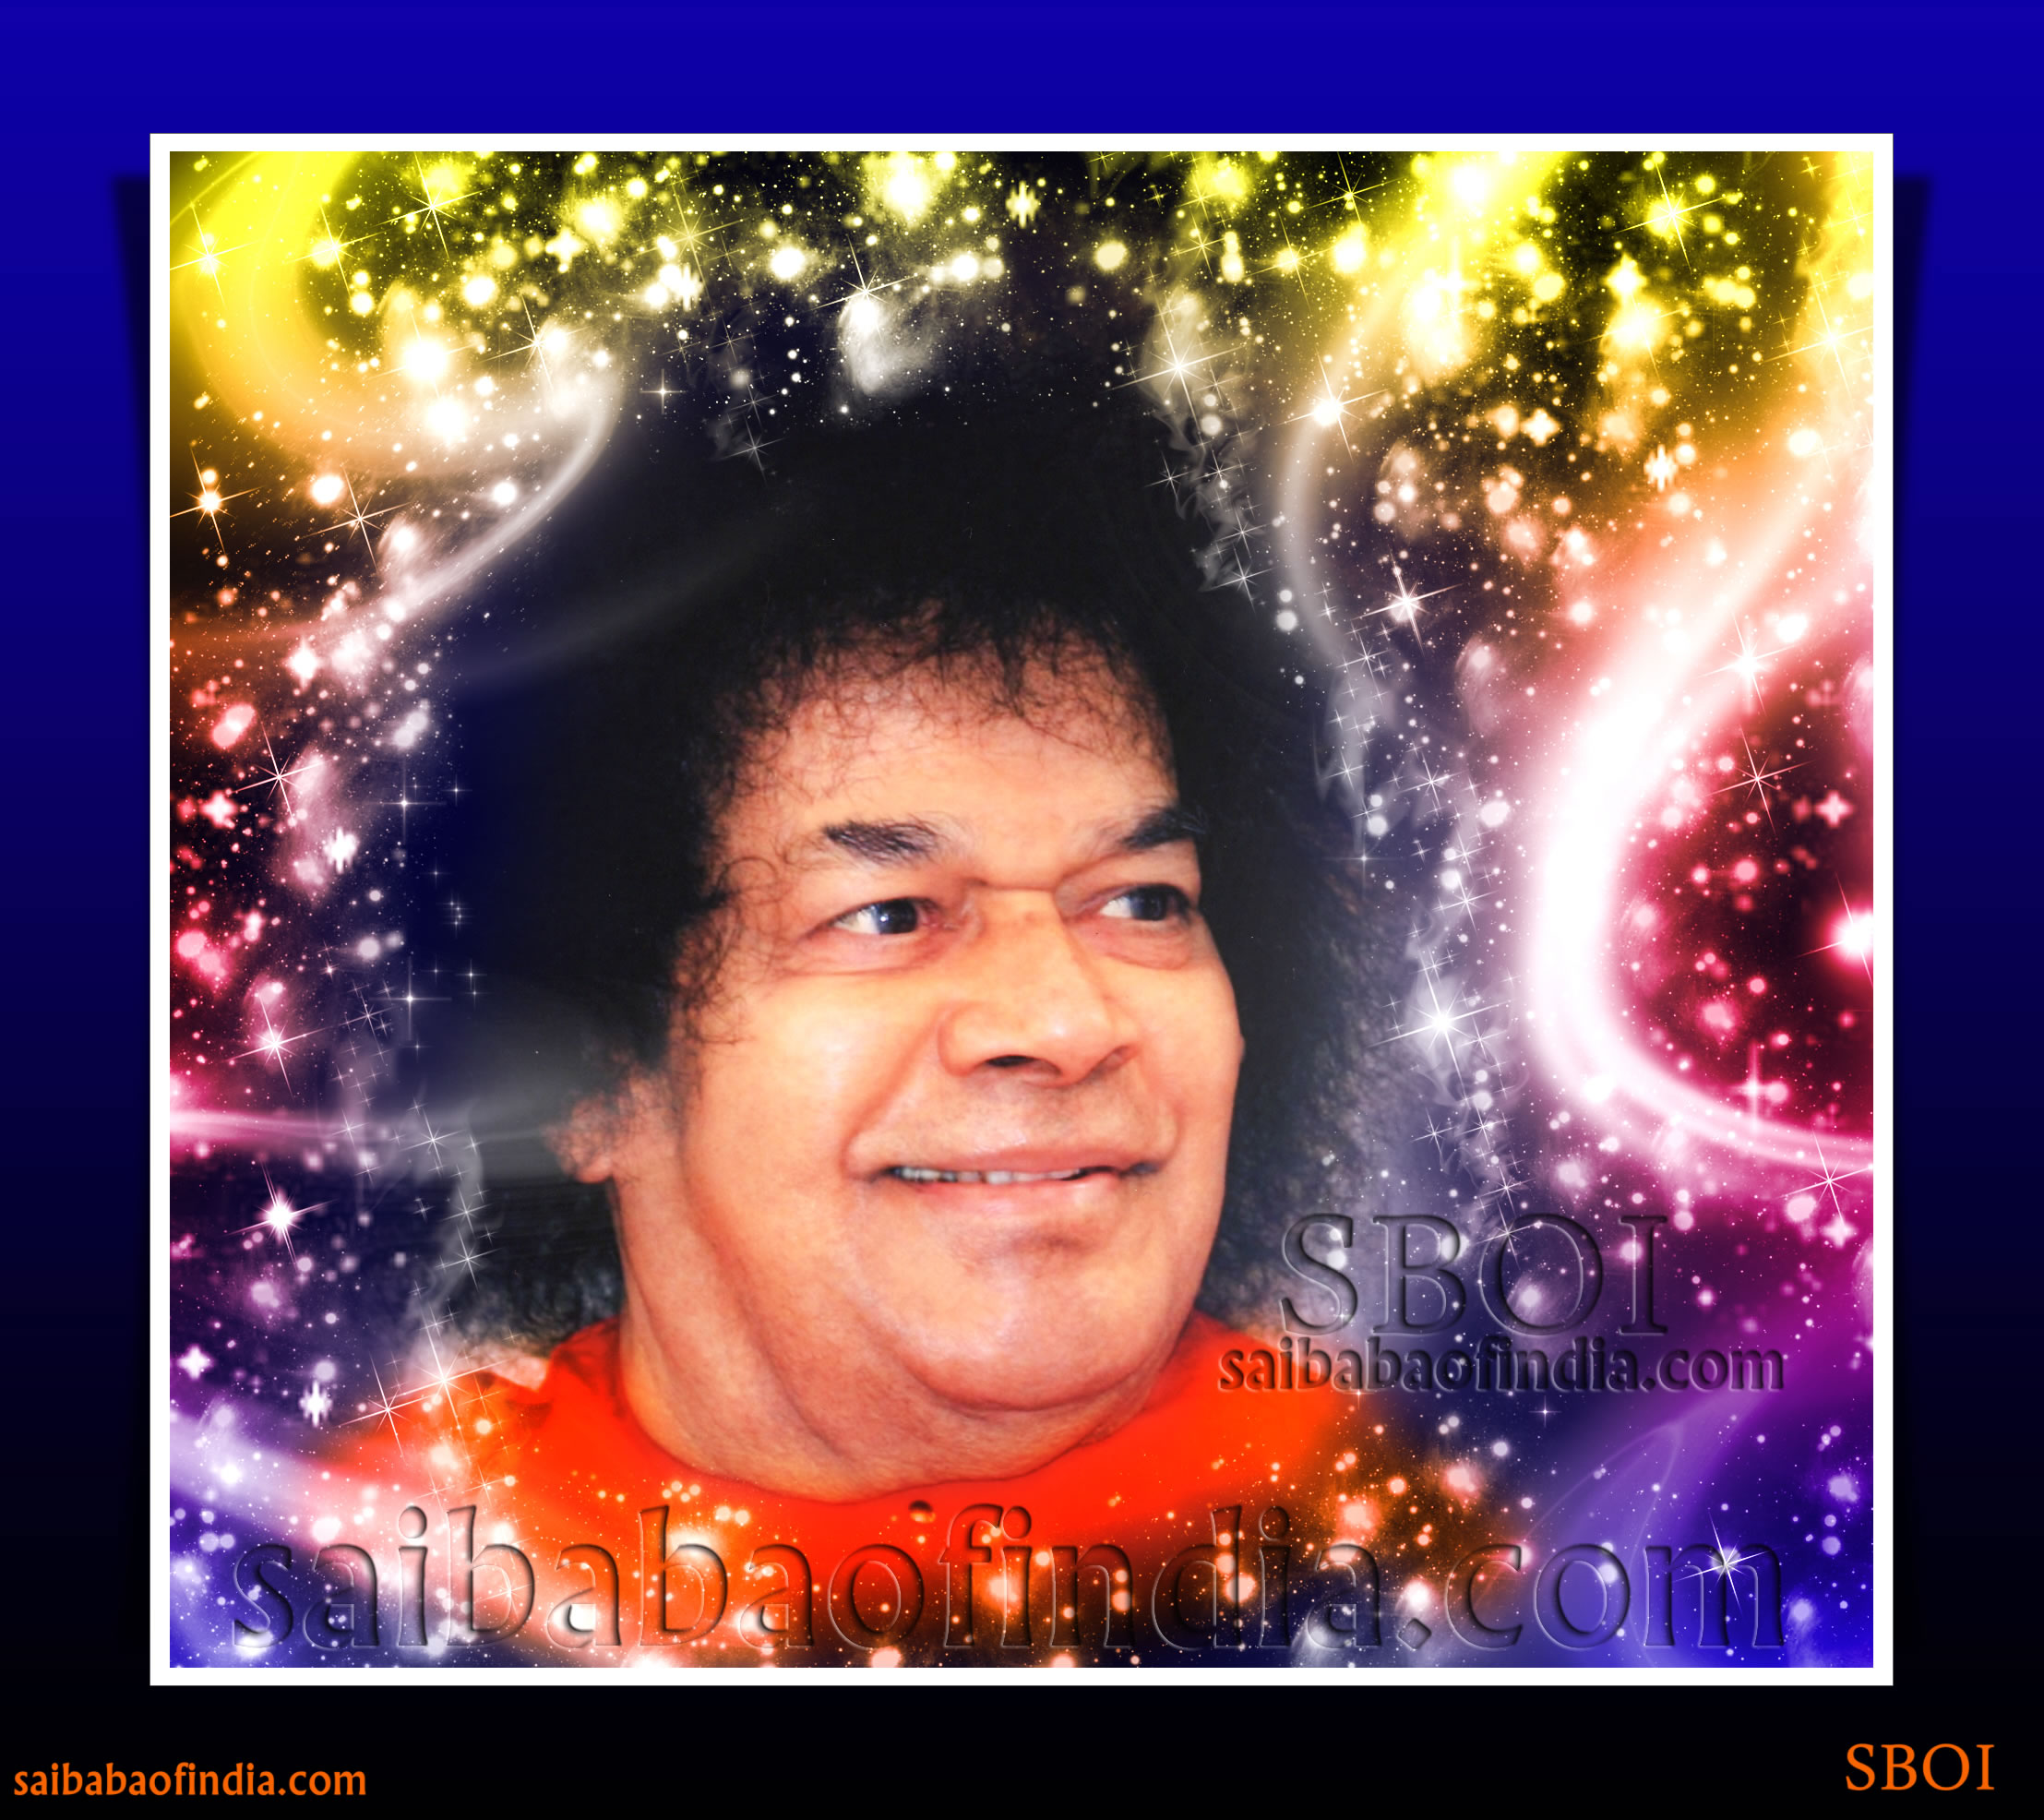 http://www.saibabaofindia.com/aug-oct2010/sri-sathya-sai-baba-in-the-stars-above.jpg